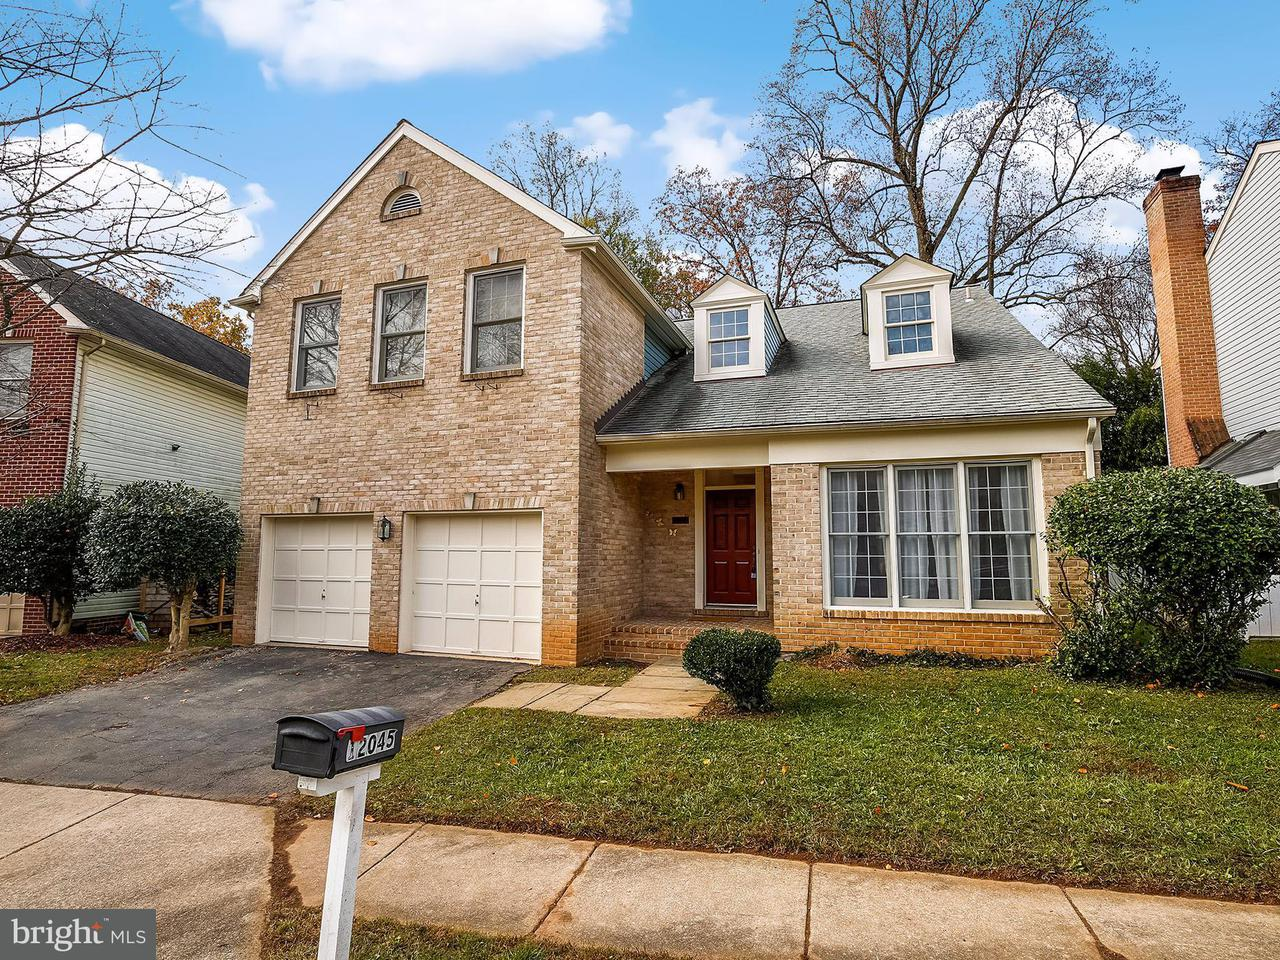 Single Family Home for Sale at 12045 Montrose Village Ter 12045 Montrose Village Ter Rockville, Maryland 20852 United States